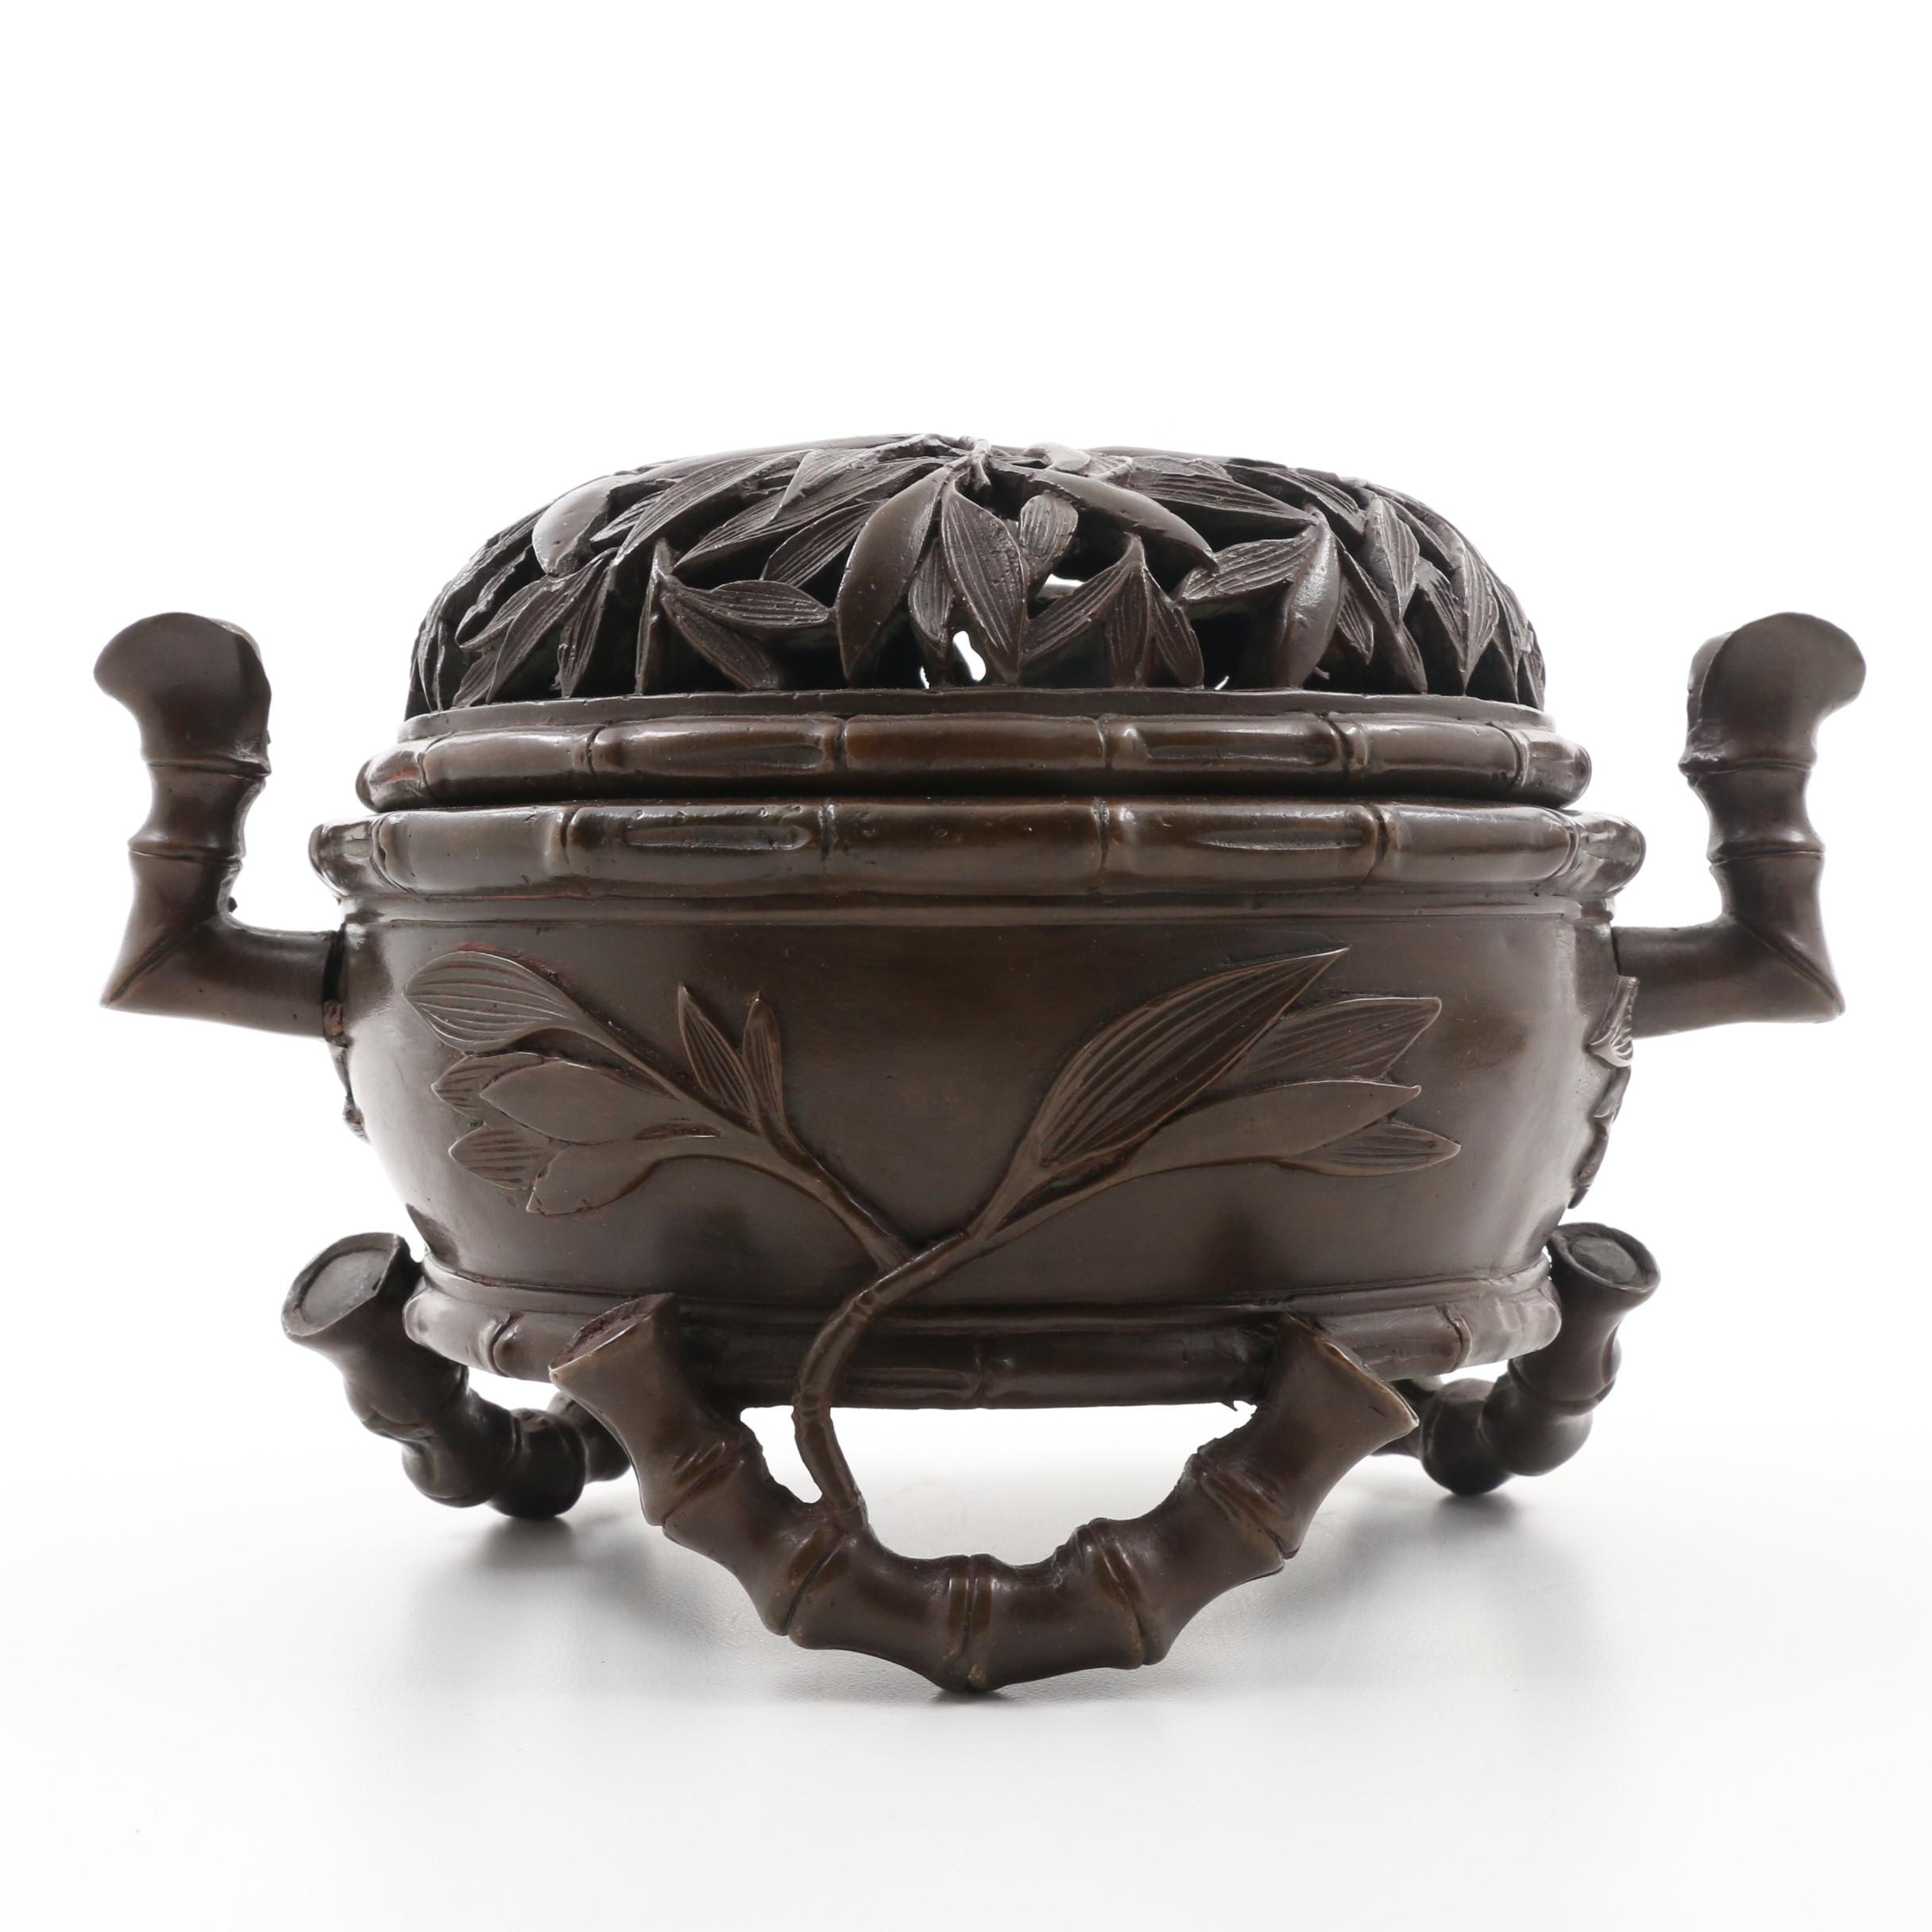 Chinese Republic Period Bronze Bamboo Censer With Pierced Cover